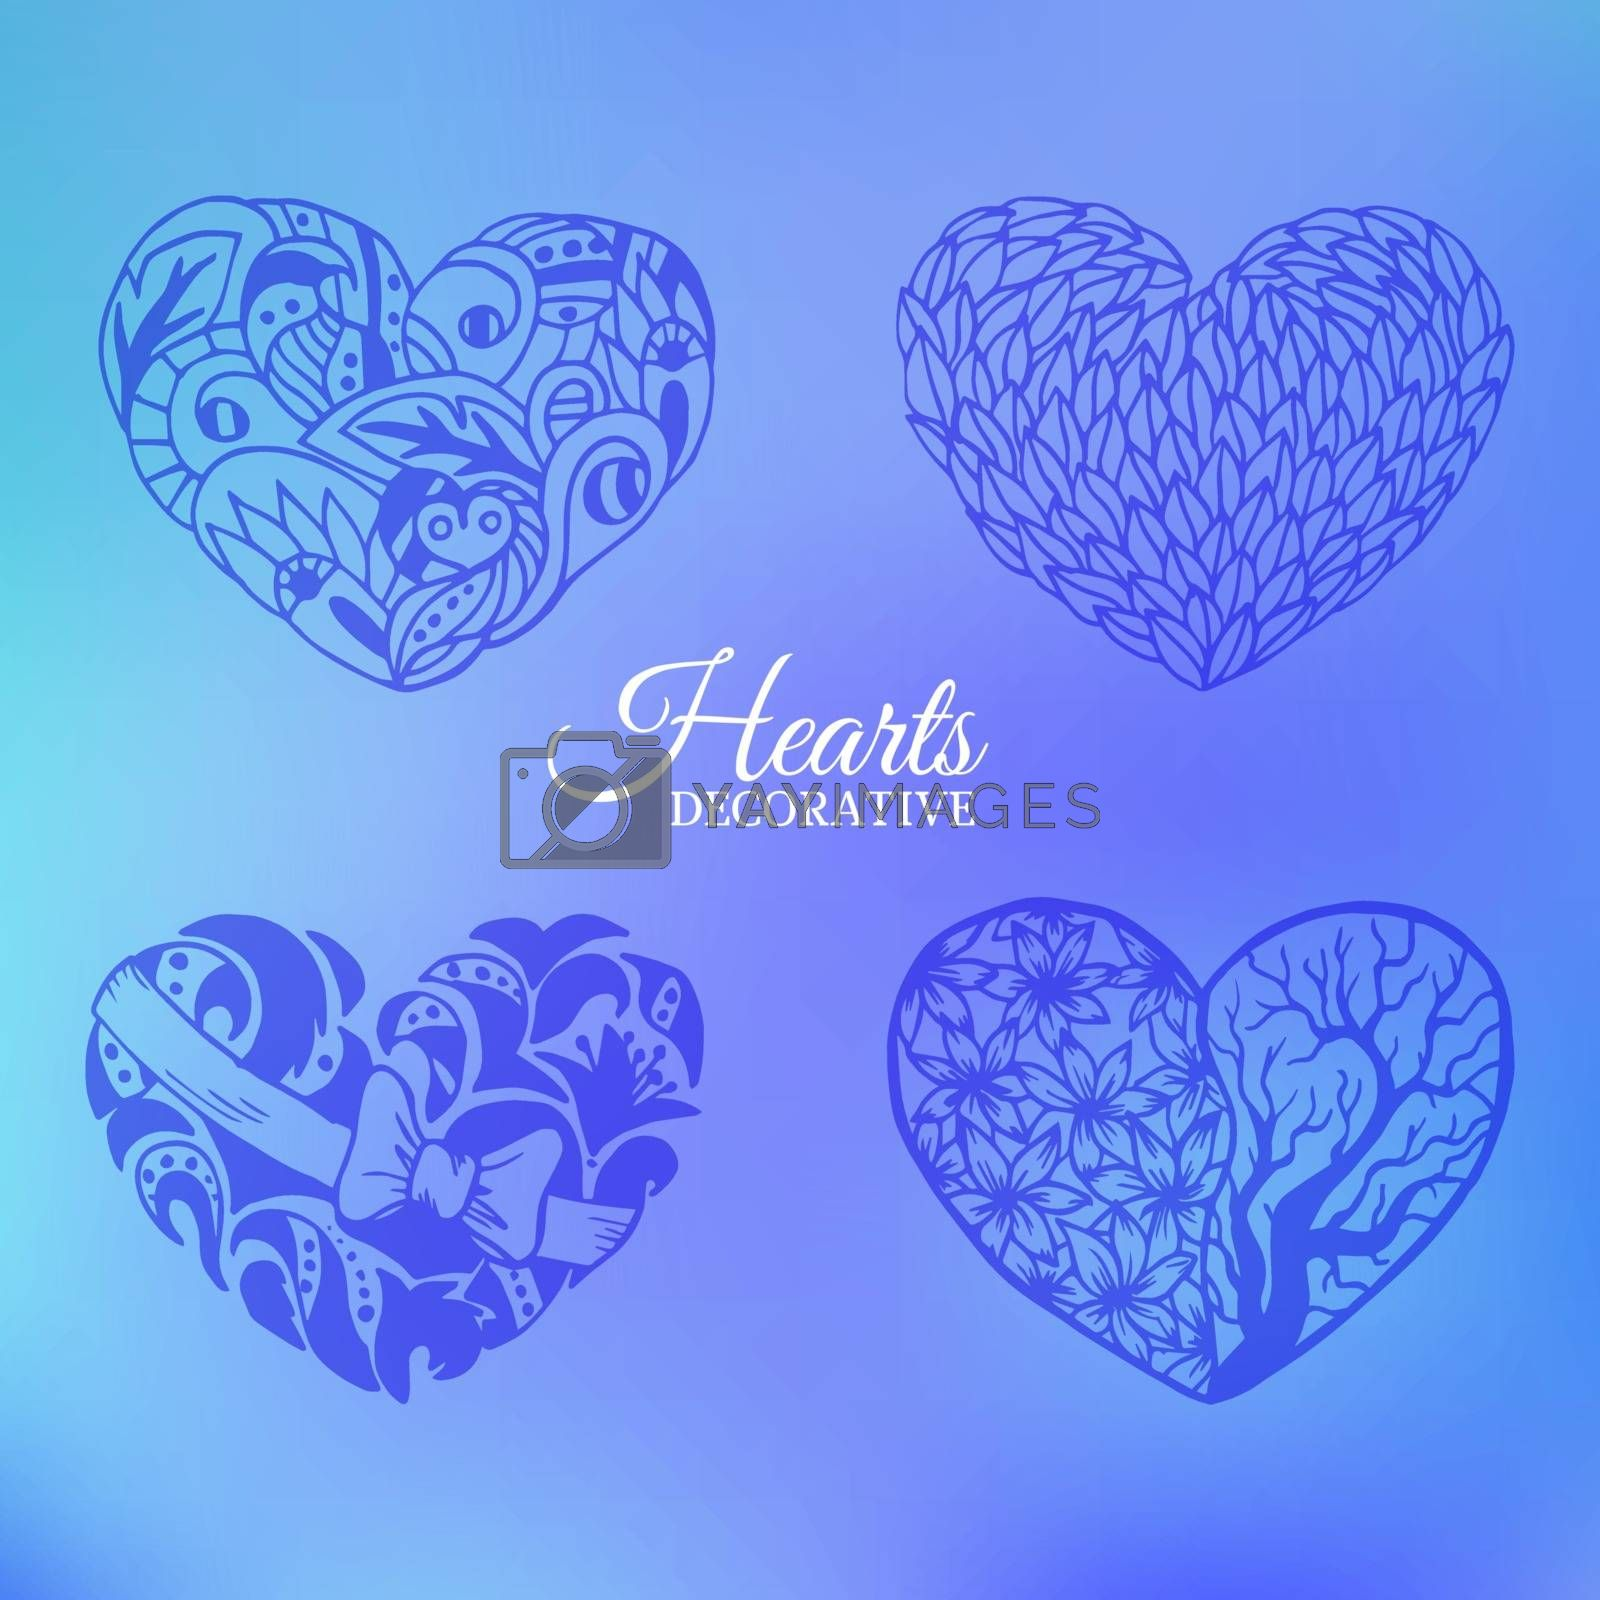 ornamental decorative heart set on blurred background concept. Vector template for web and mobile design.